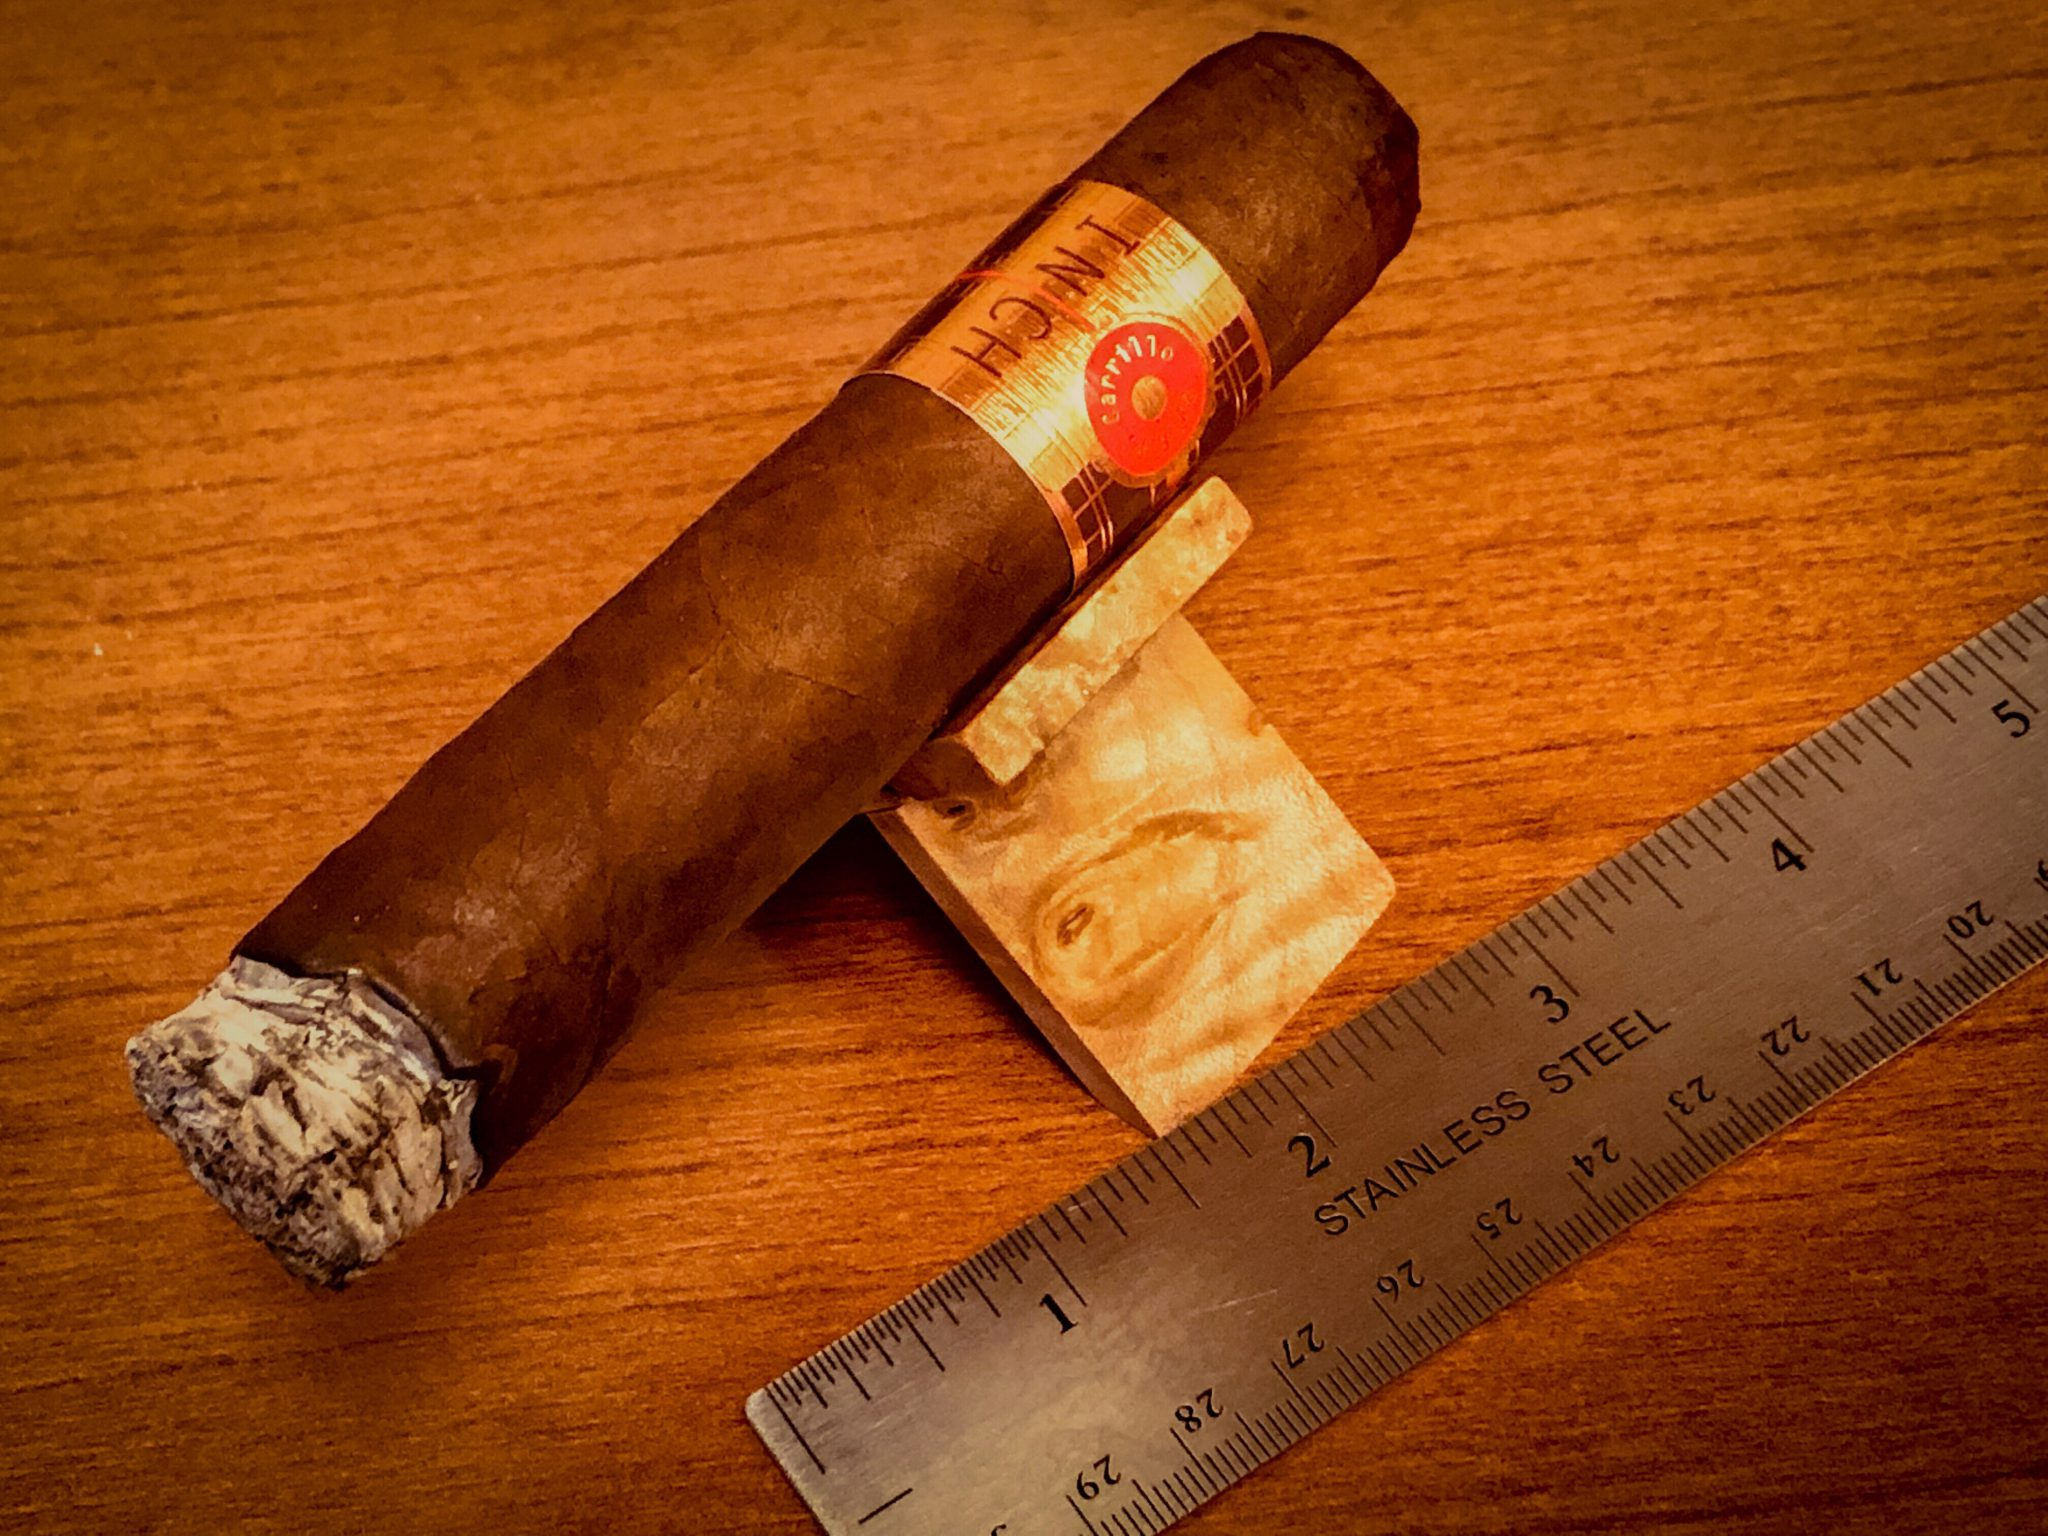 EPC EP Carrillo Cigars Guide EP Carrillo Inch Ringmaster Cigar Review by Jared Gulick